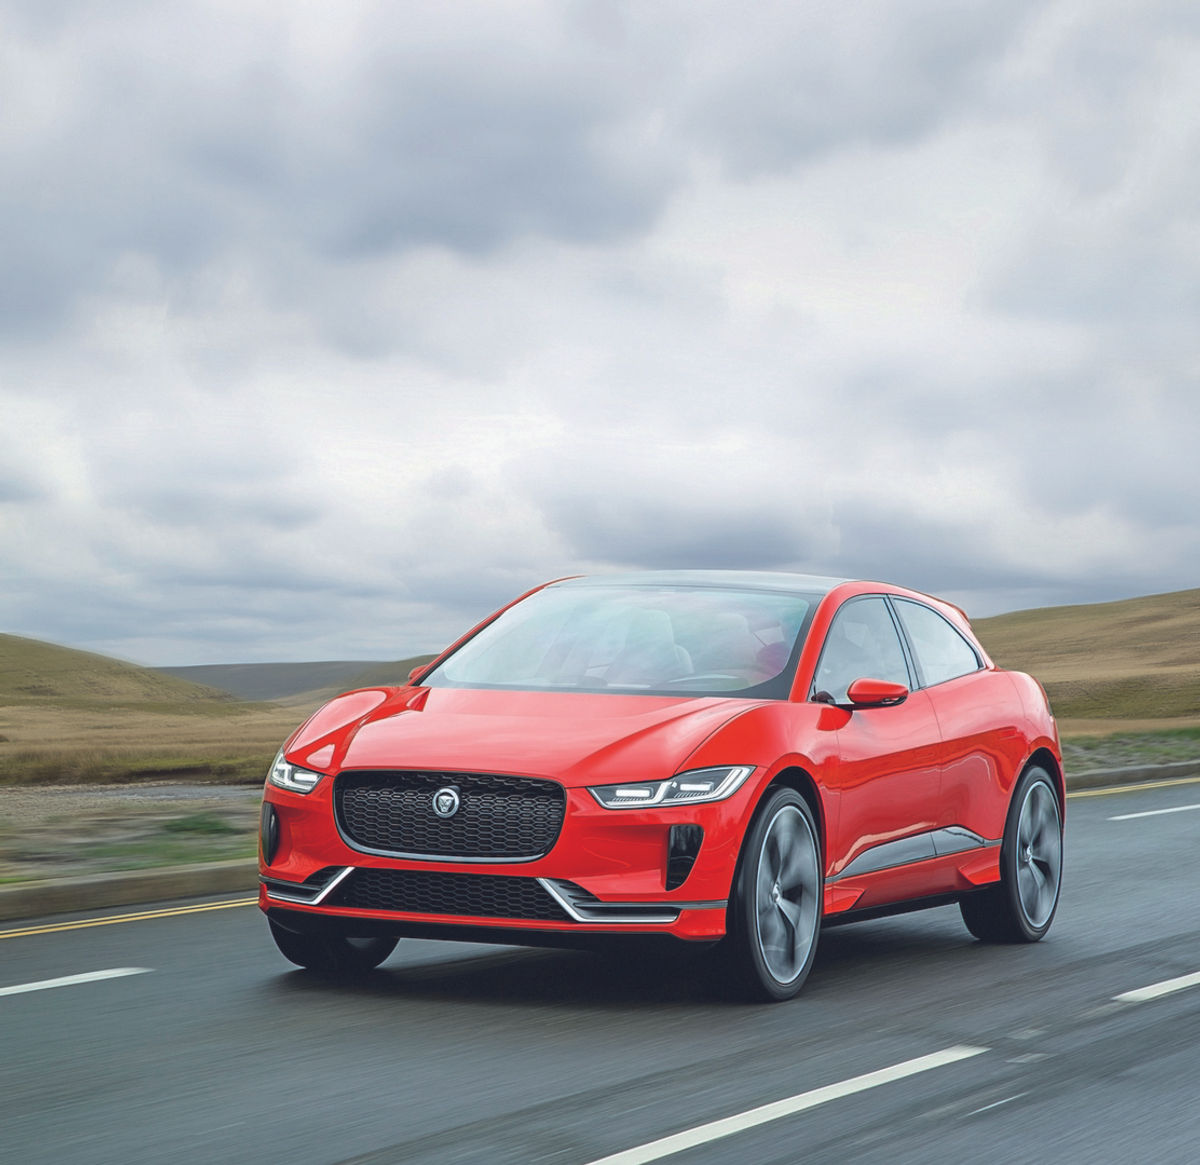 Jaguar Cars: Jaguar I-Pace Concept (2018) International First Drive